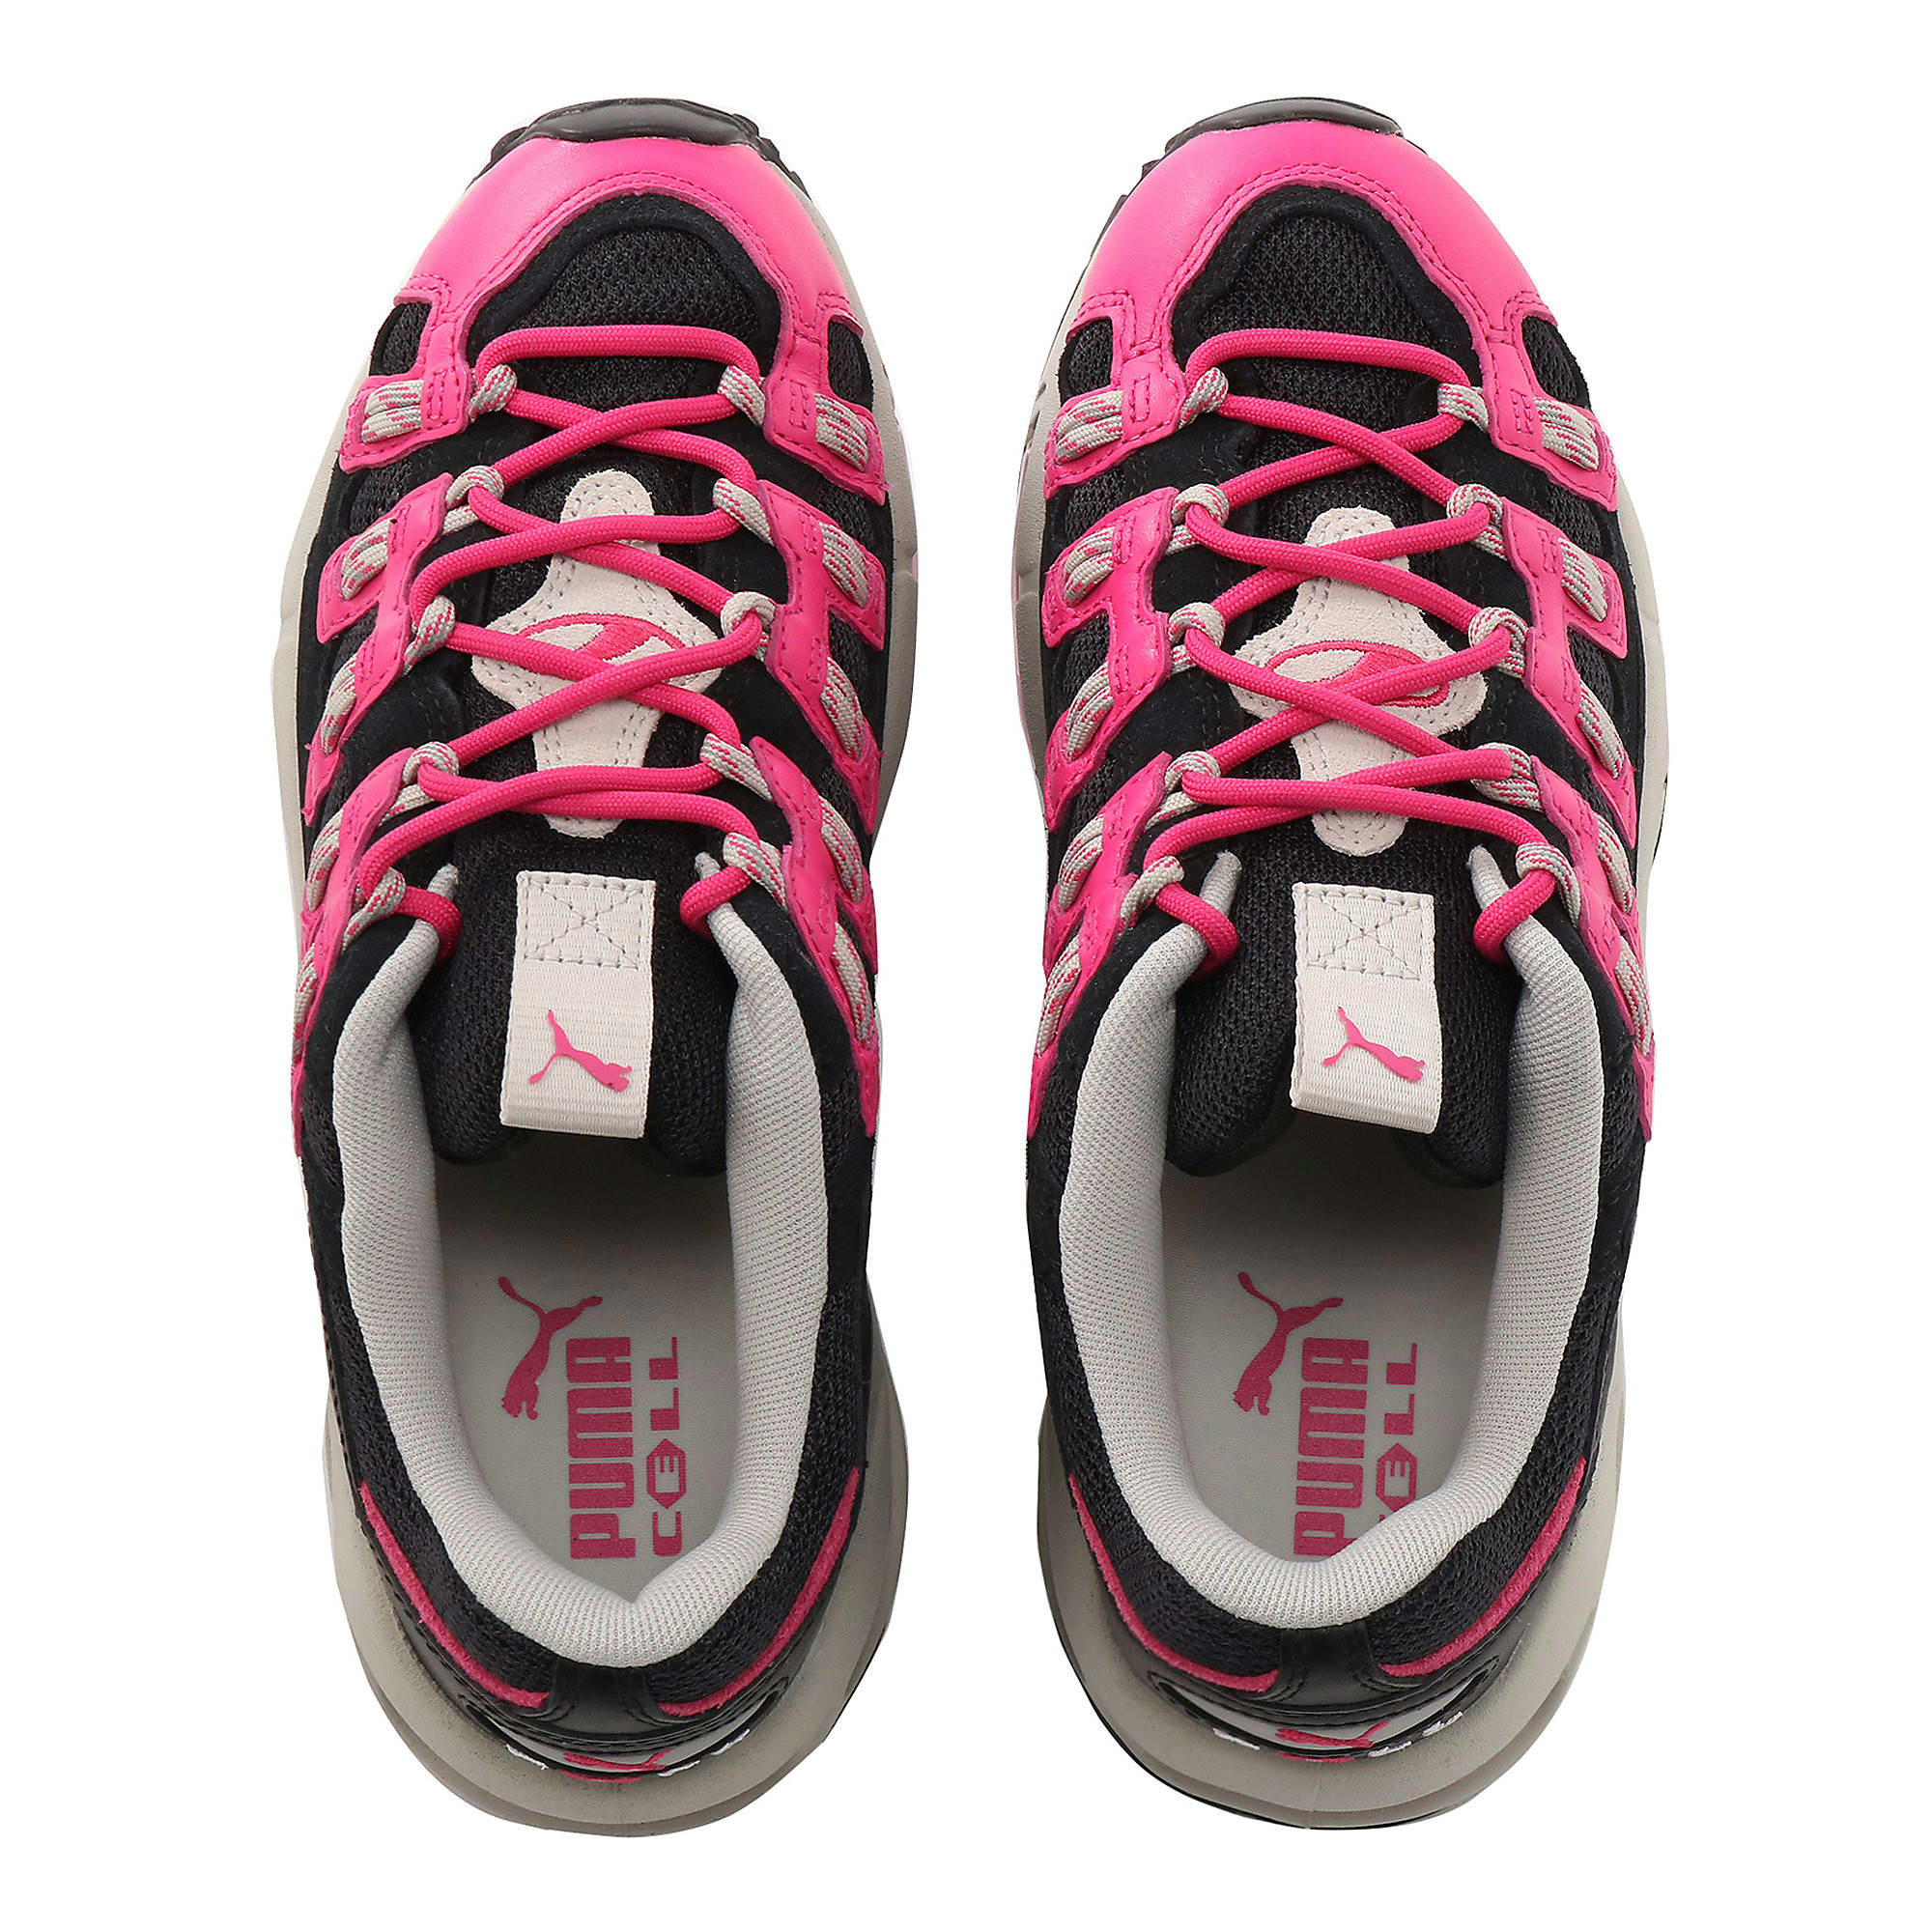 Thumbnail 6 of CELL ENDURA スニーカー, Puma Black-Fuchsia Purple, medium-JPN